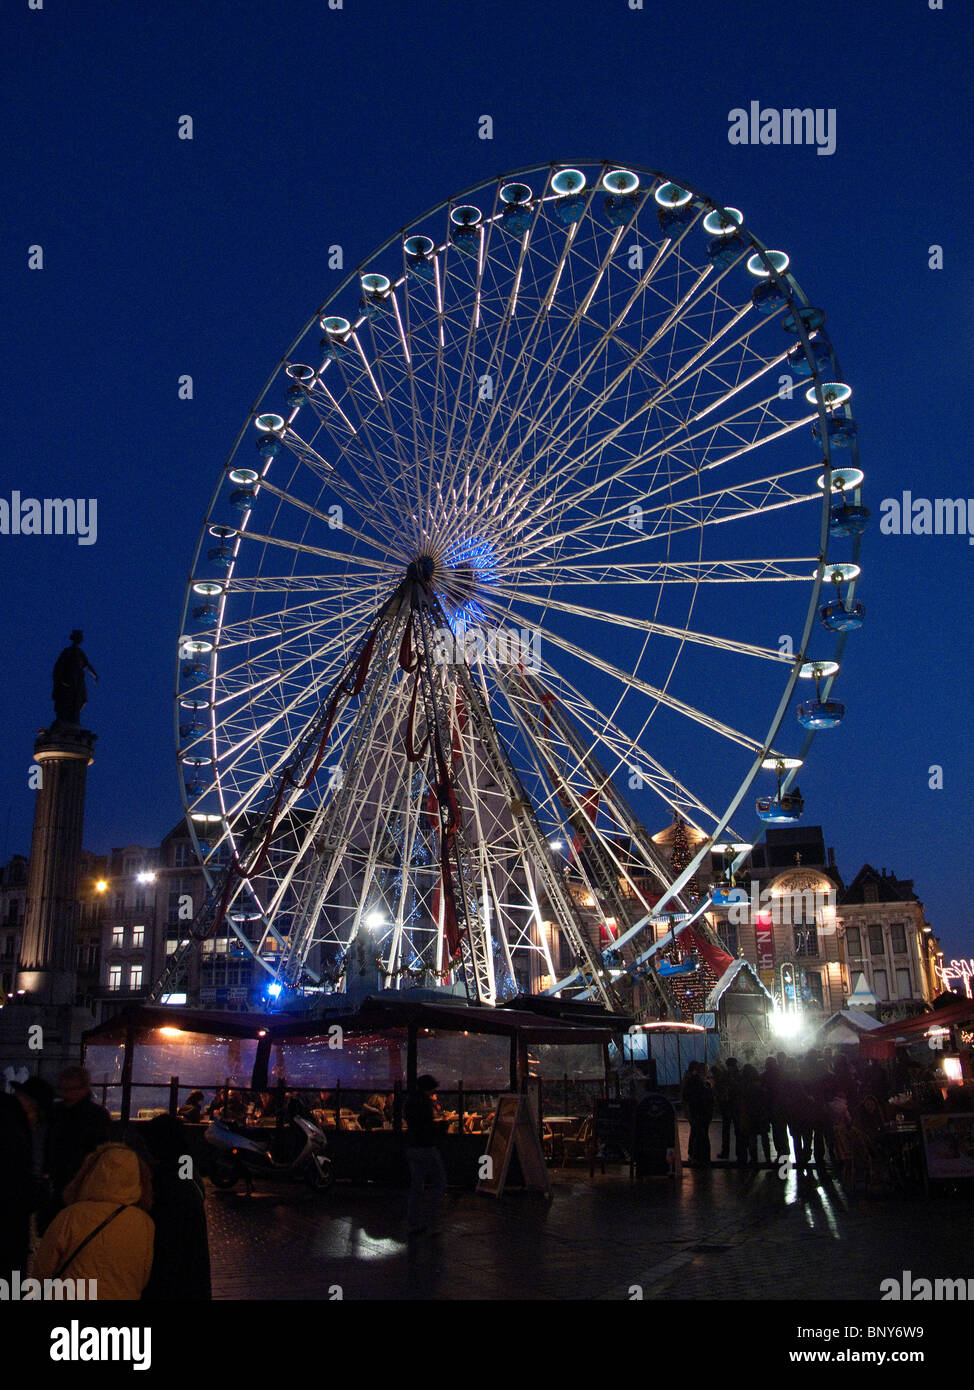 Ferris wheel in Grand Place, Lille, France, at dusk, during Christmas - Stock Image